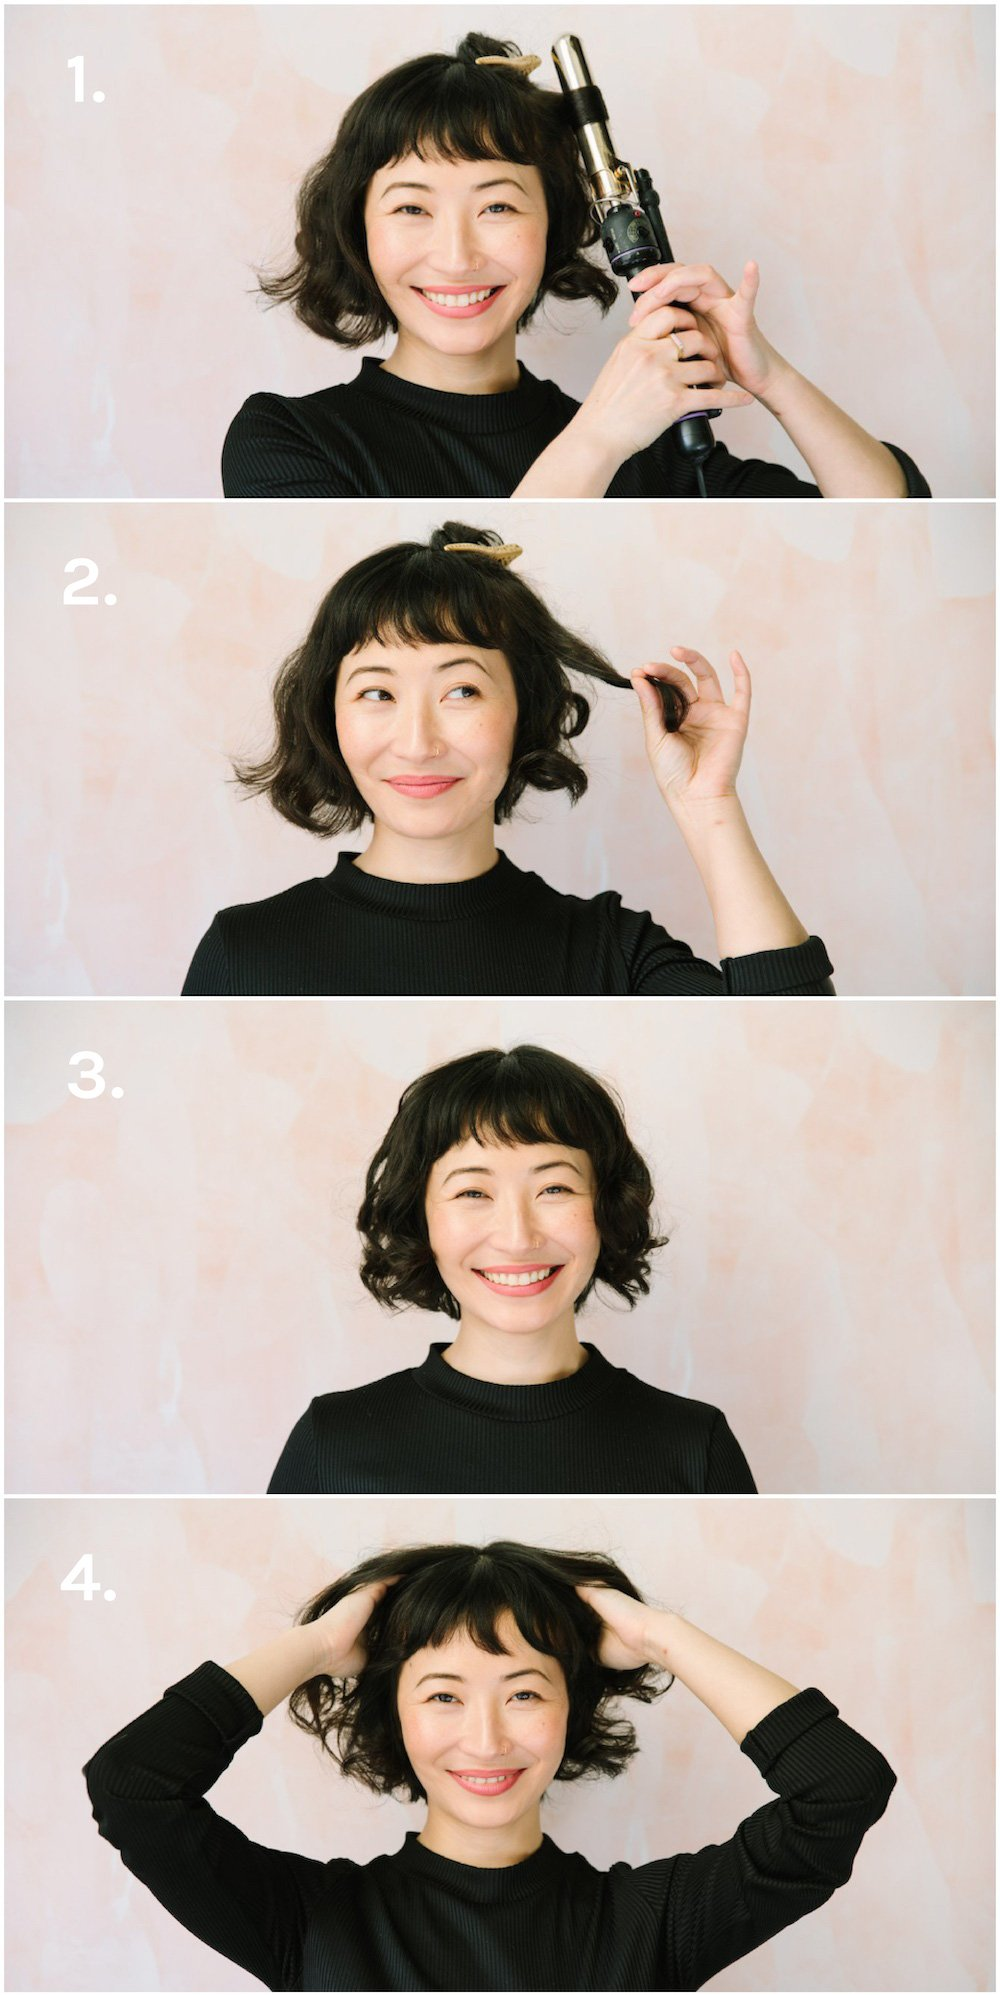 Three Short Hair Tutorials (Including Fleabag Curls!)